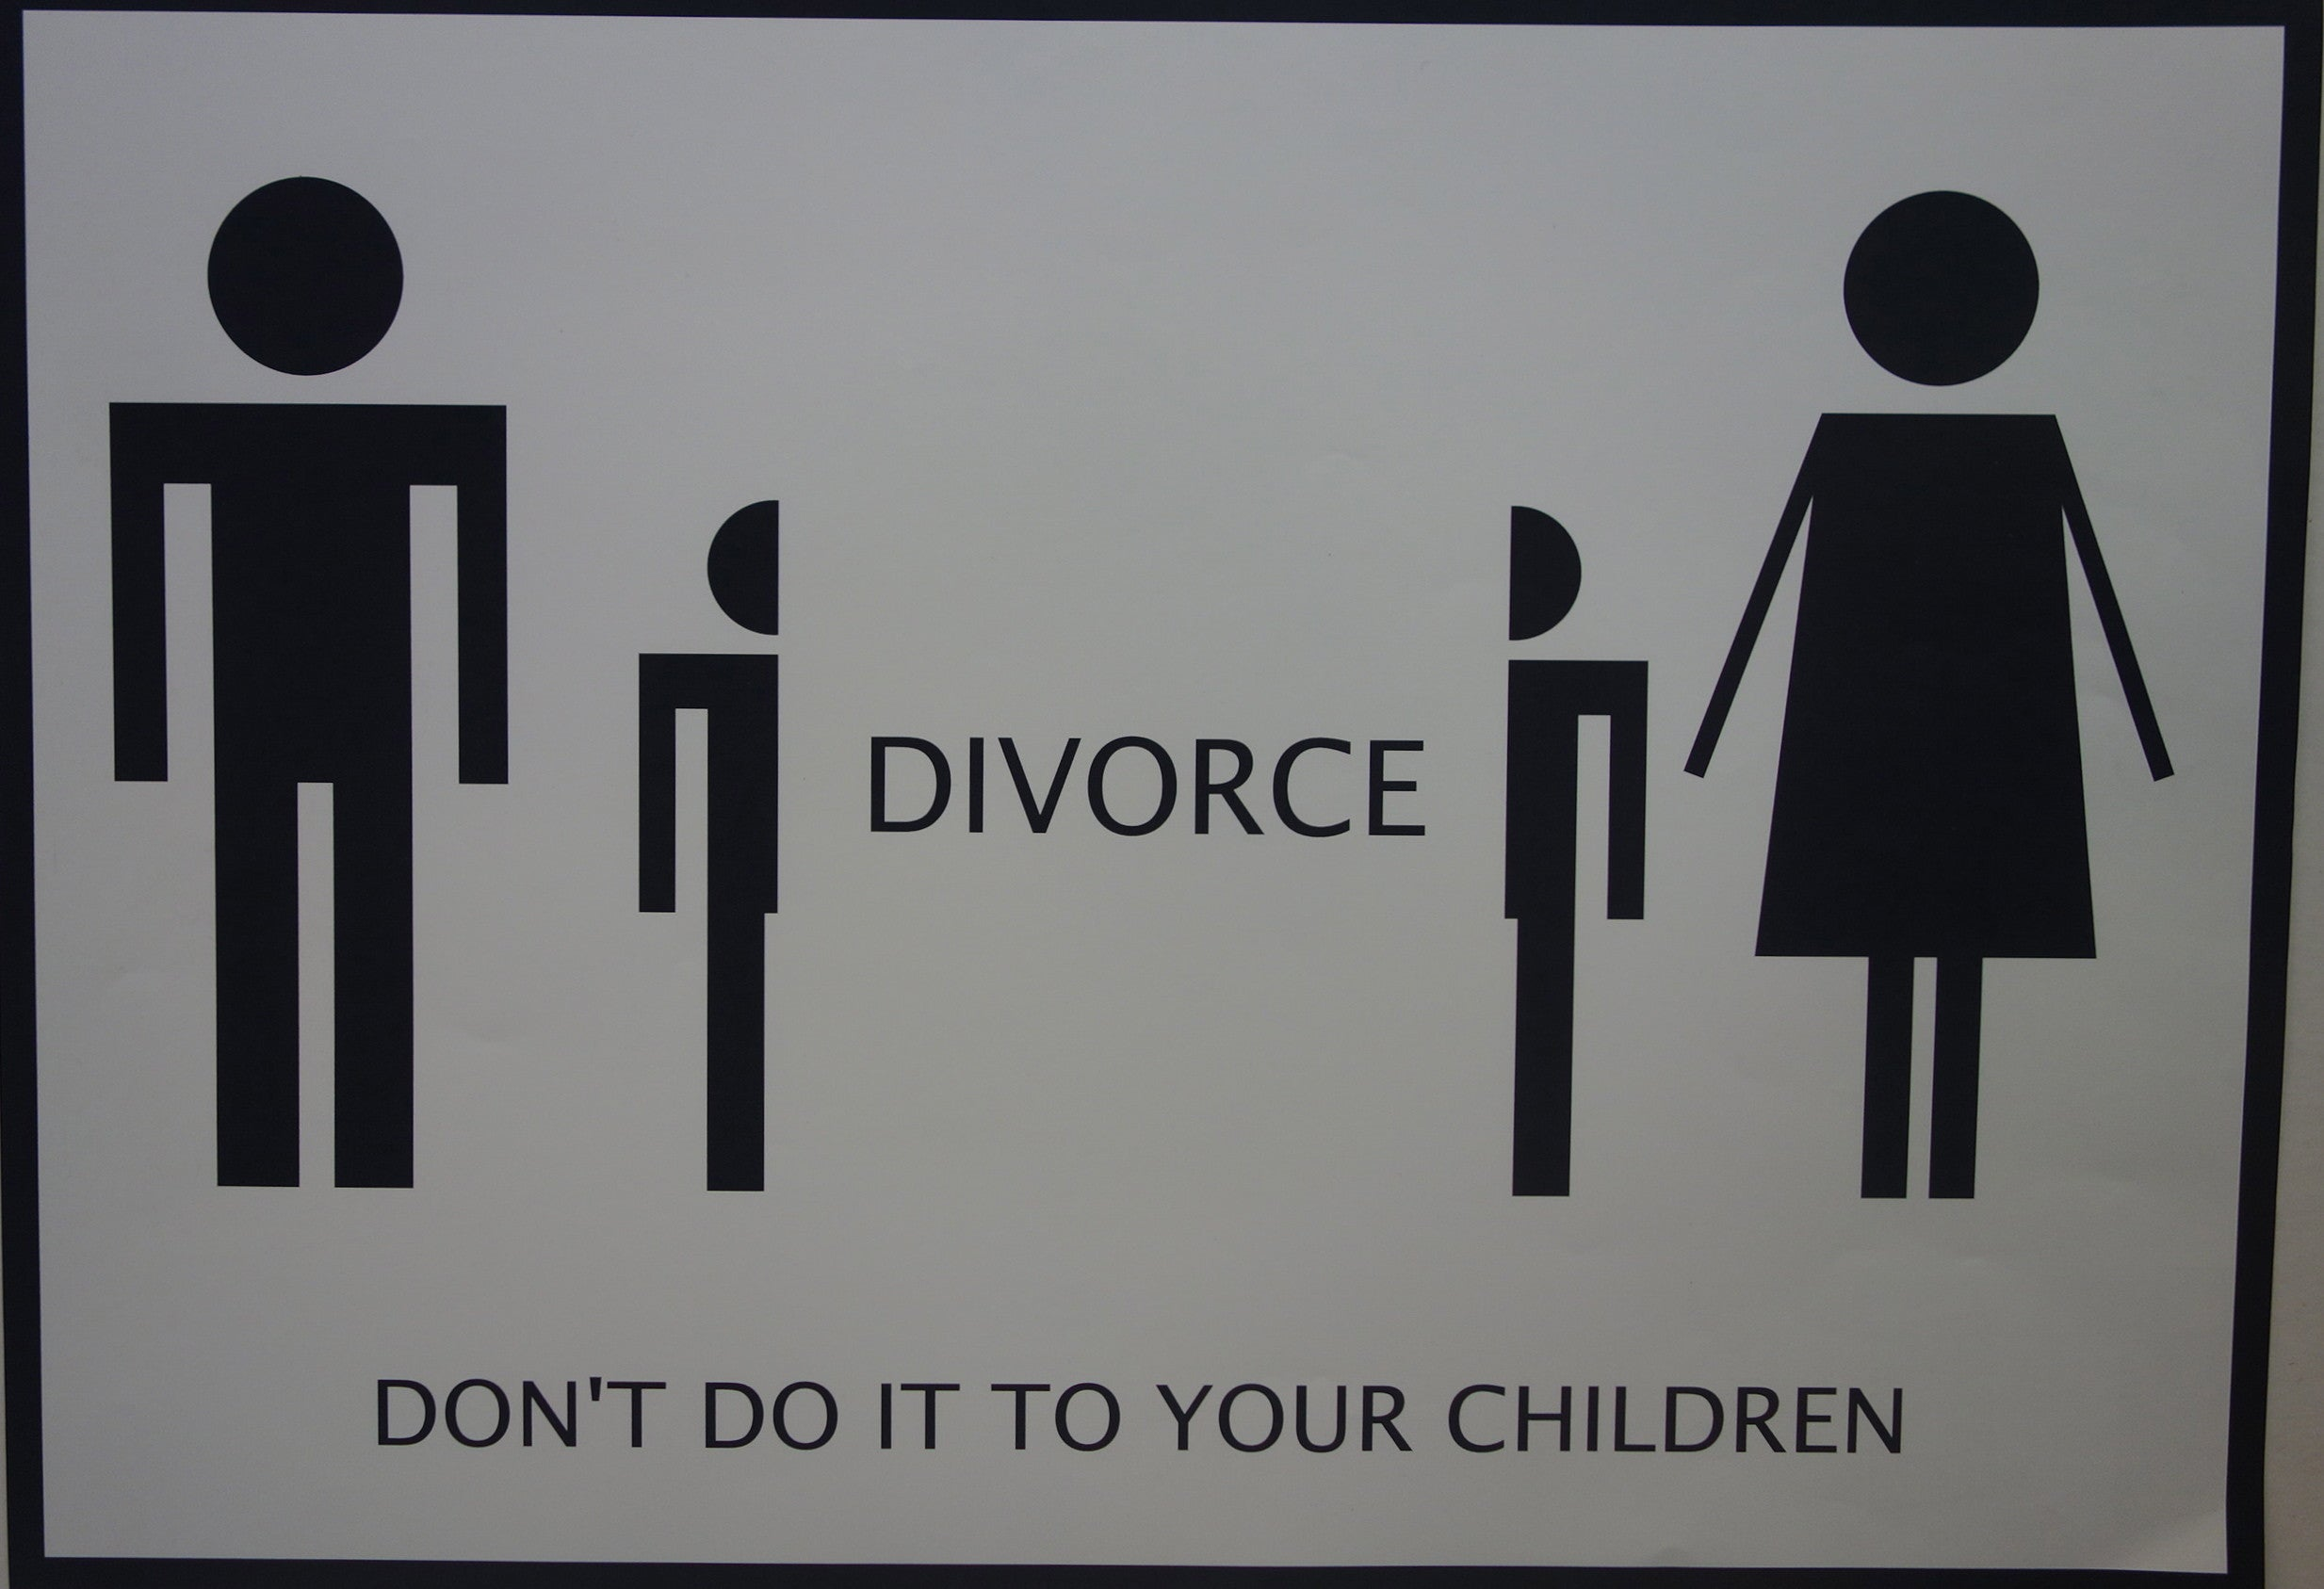 Divorce Don't do it to your children